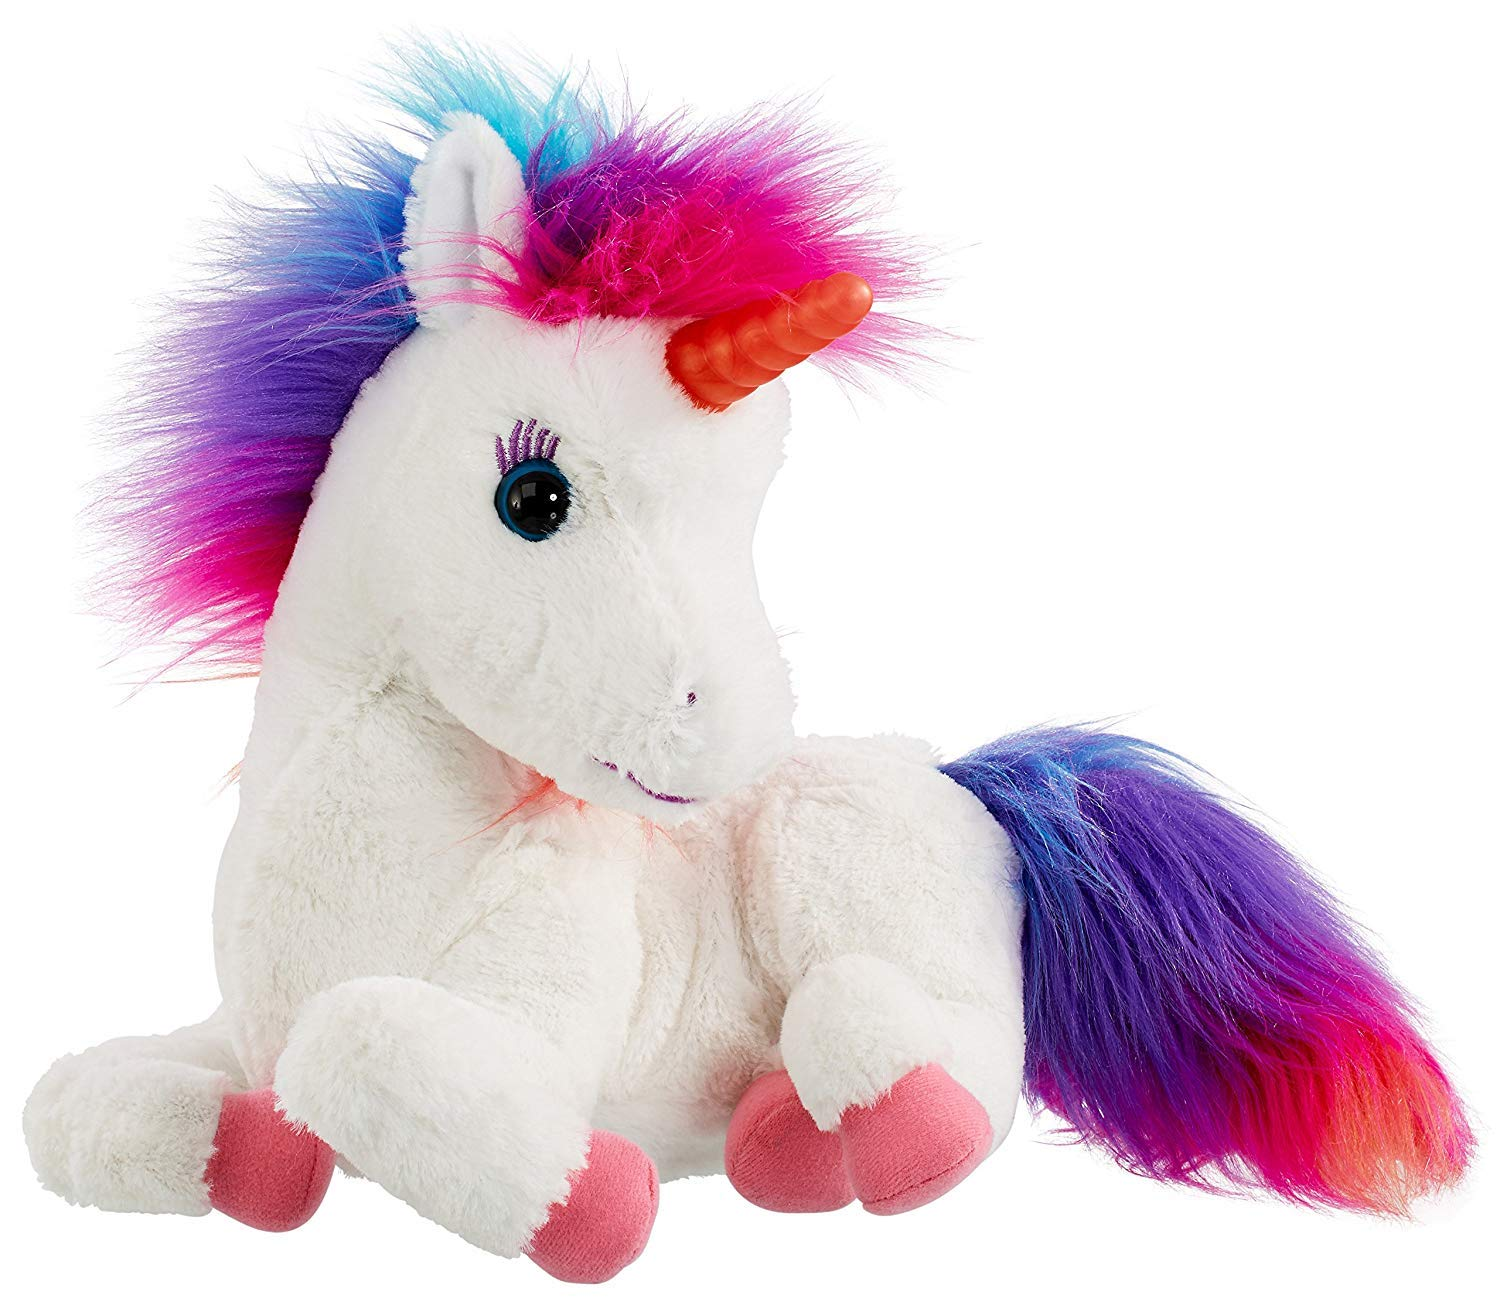 AniMagic Rainbow - My Glowing Unicorn, a Soft Unicorn Plush Toy with Glowing Horn and Unicorn Sounds 8